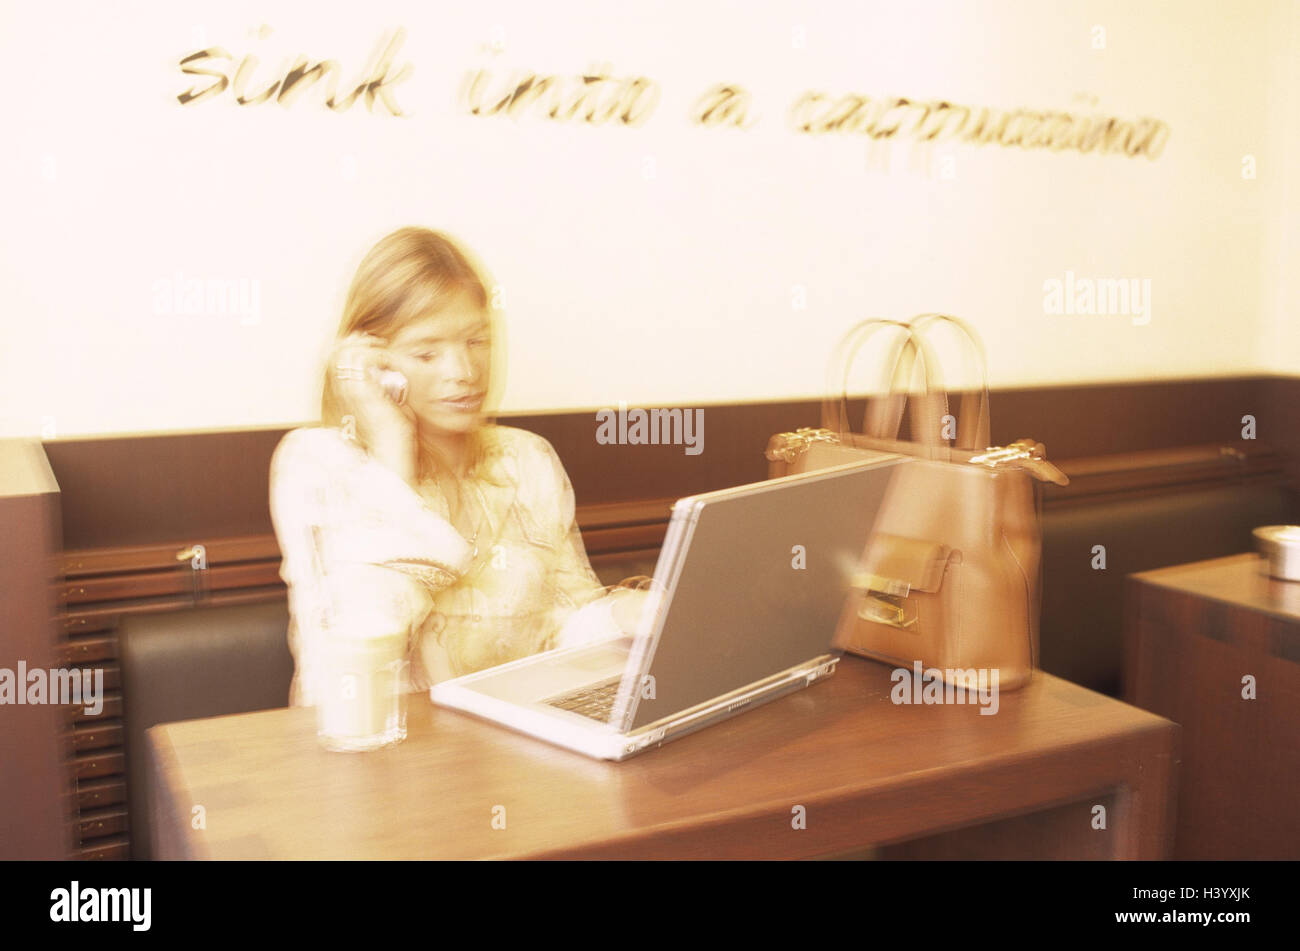 Woman, call up young, cafe, notebook computer, mobile phone, blur, manipulated, bar, standing cafe, inside, work, - Stock Image